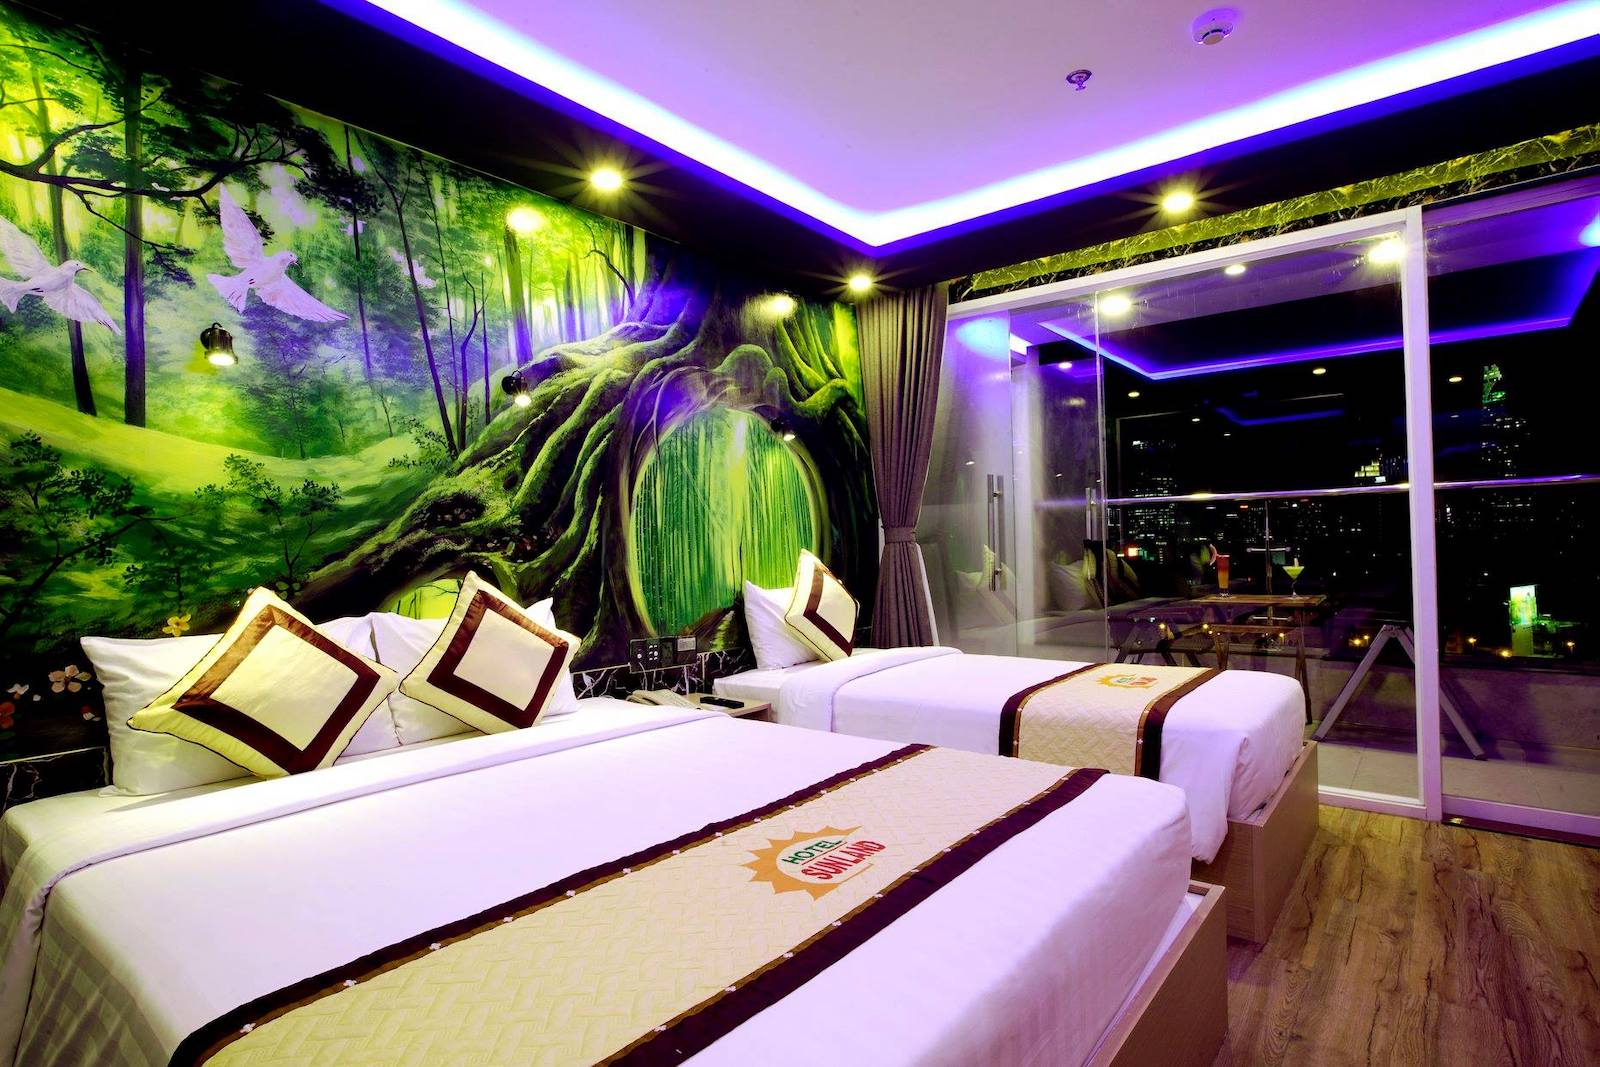 Image of a room in the Sunland Hotel in Ho Chi Minh City, Vietnam